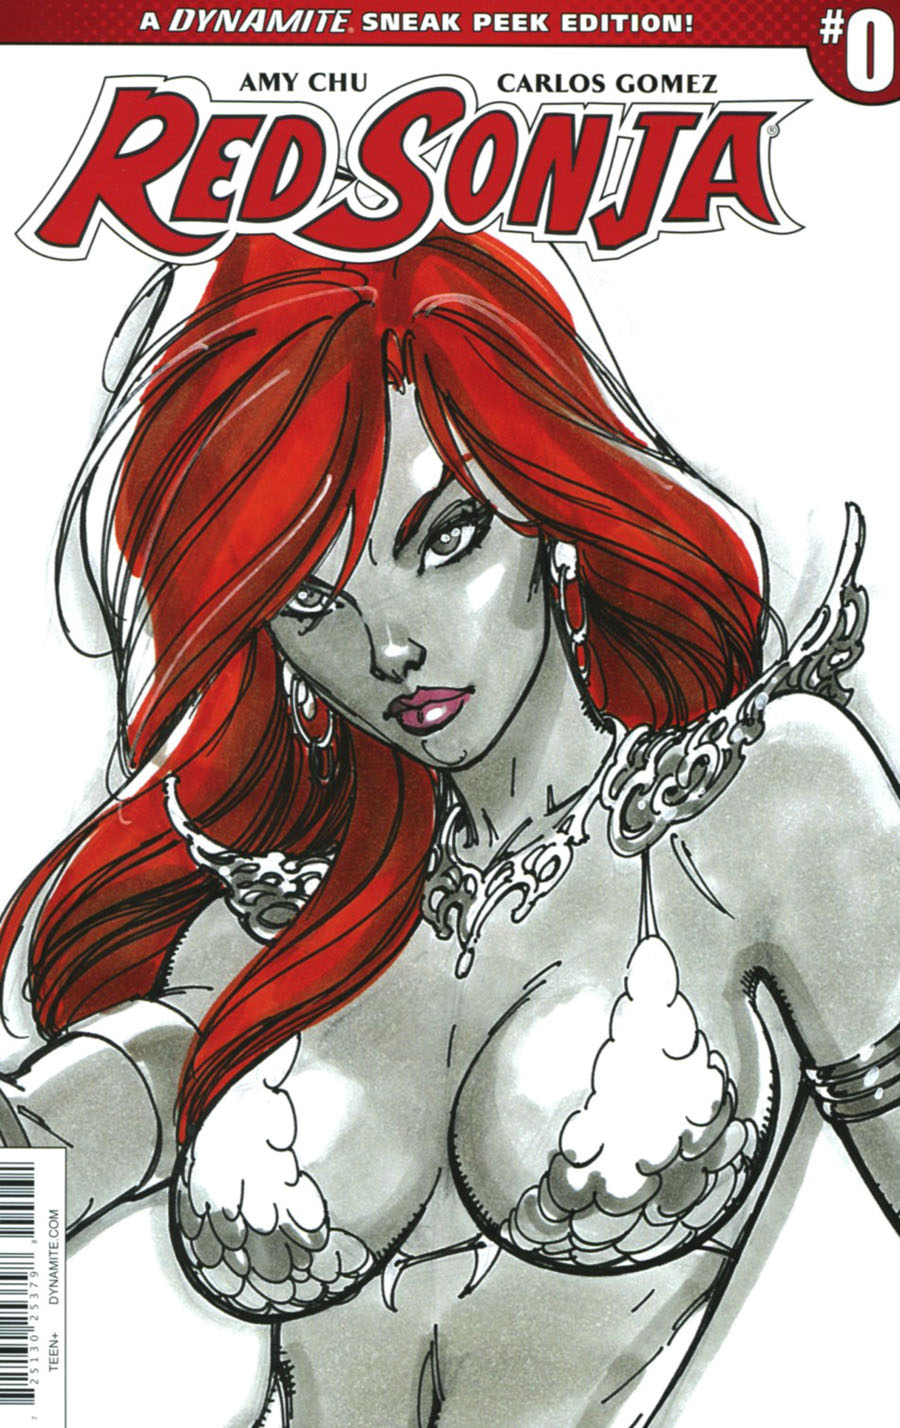 Red Sonja Vol 7 #0 Cover C Incentive J Scott Campbell Sneak Peek Variant Cover